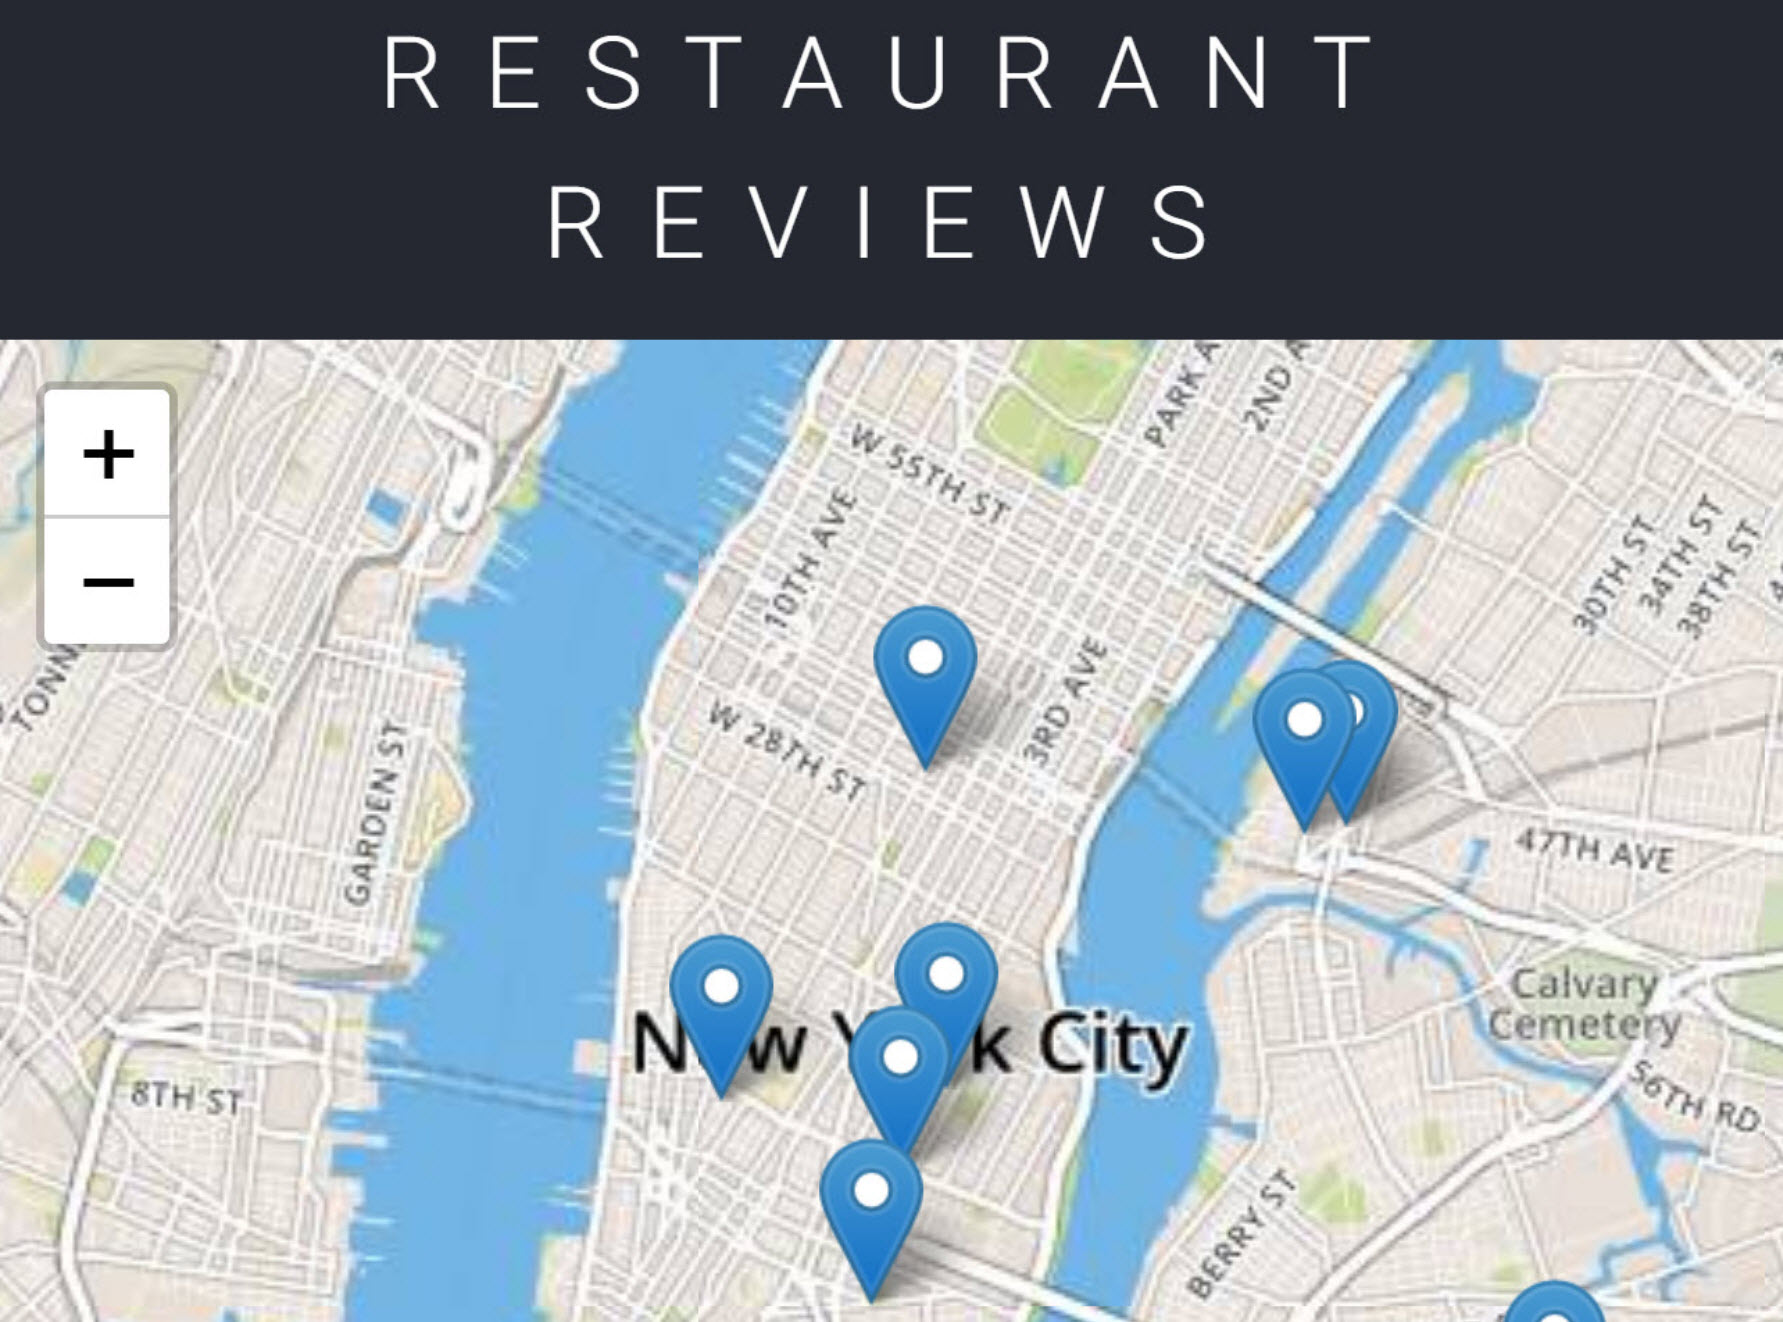 Restaurant Reviews App – Stage 1 – Kathleen West